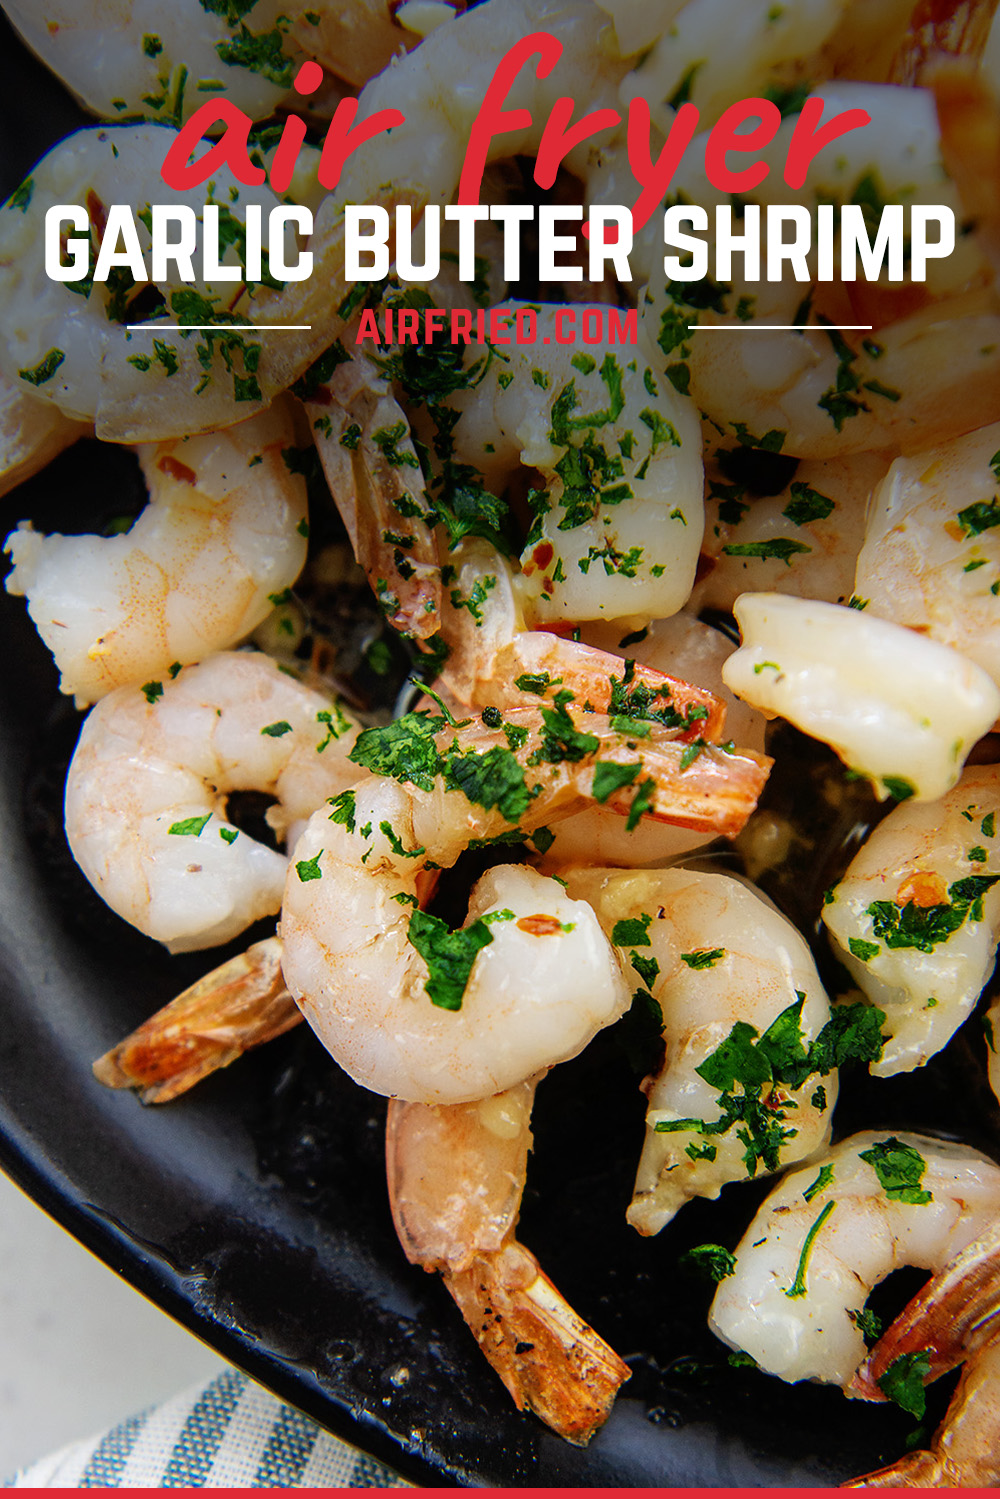 Just 10 minutes to cook this shrimp straight from the freezer! Pop it in the air fryer and then drizzle with garlic butter.